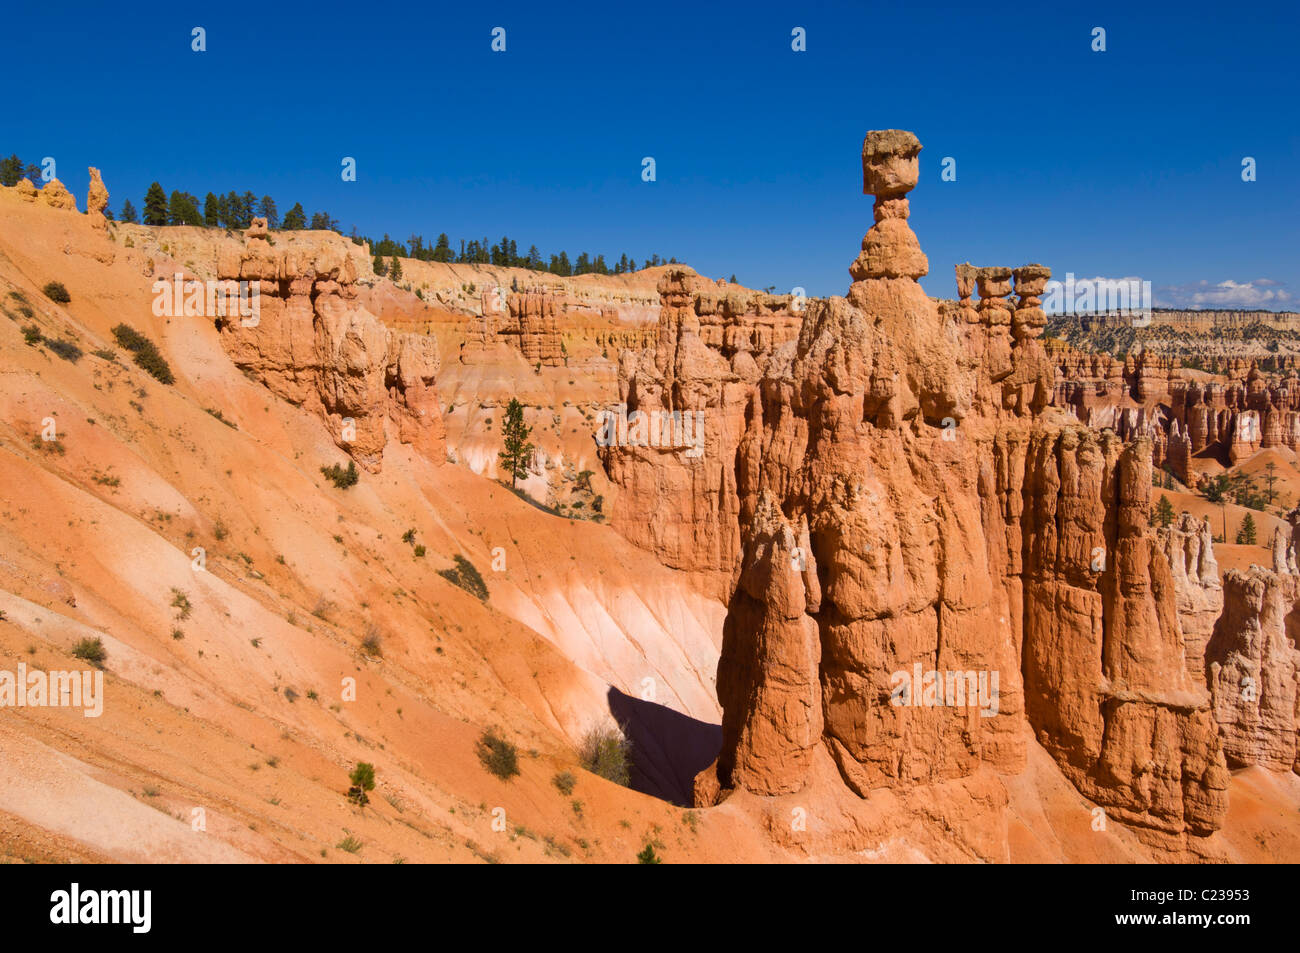 Thor's Hammer and Sandstone Hoodoos in Bryce Canyon Amphitheatre Utah USA United States of America US - Stock Image